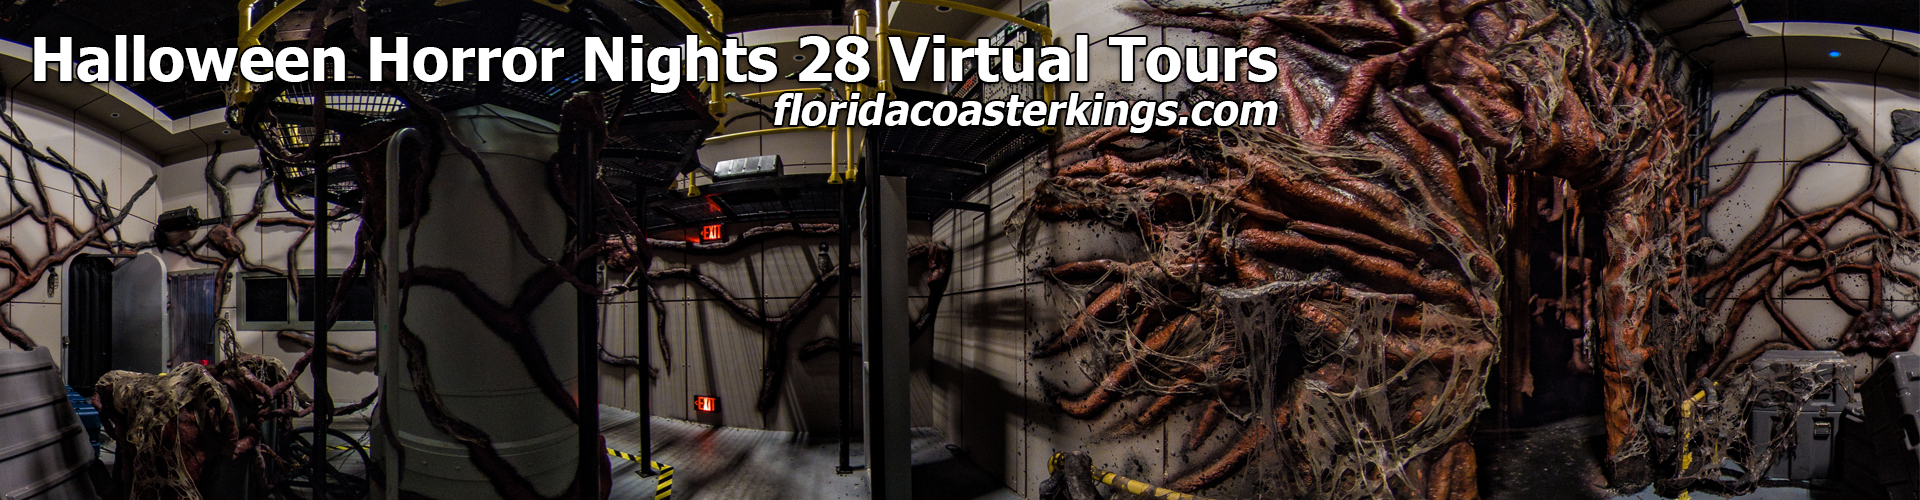 HHN 28 Virtual Tours